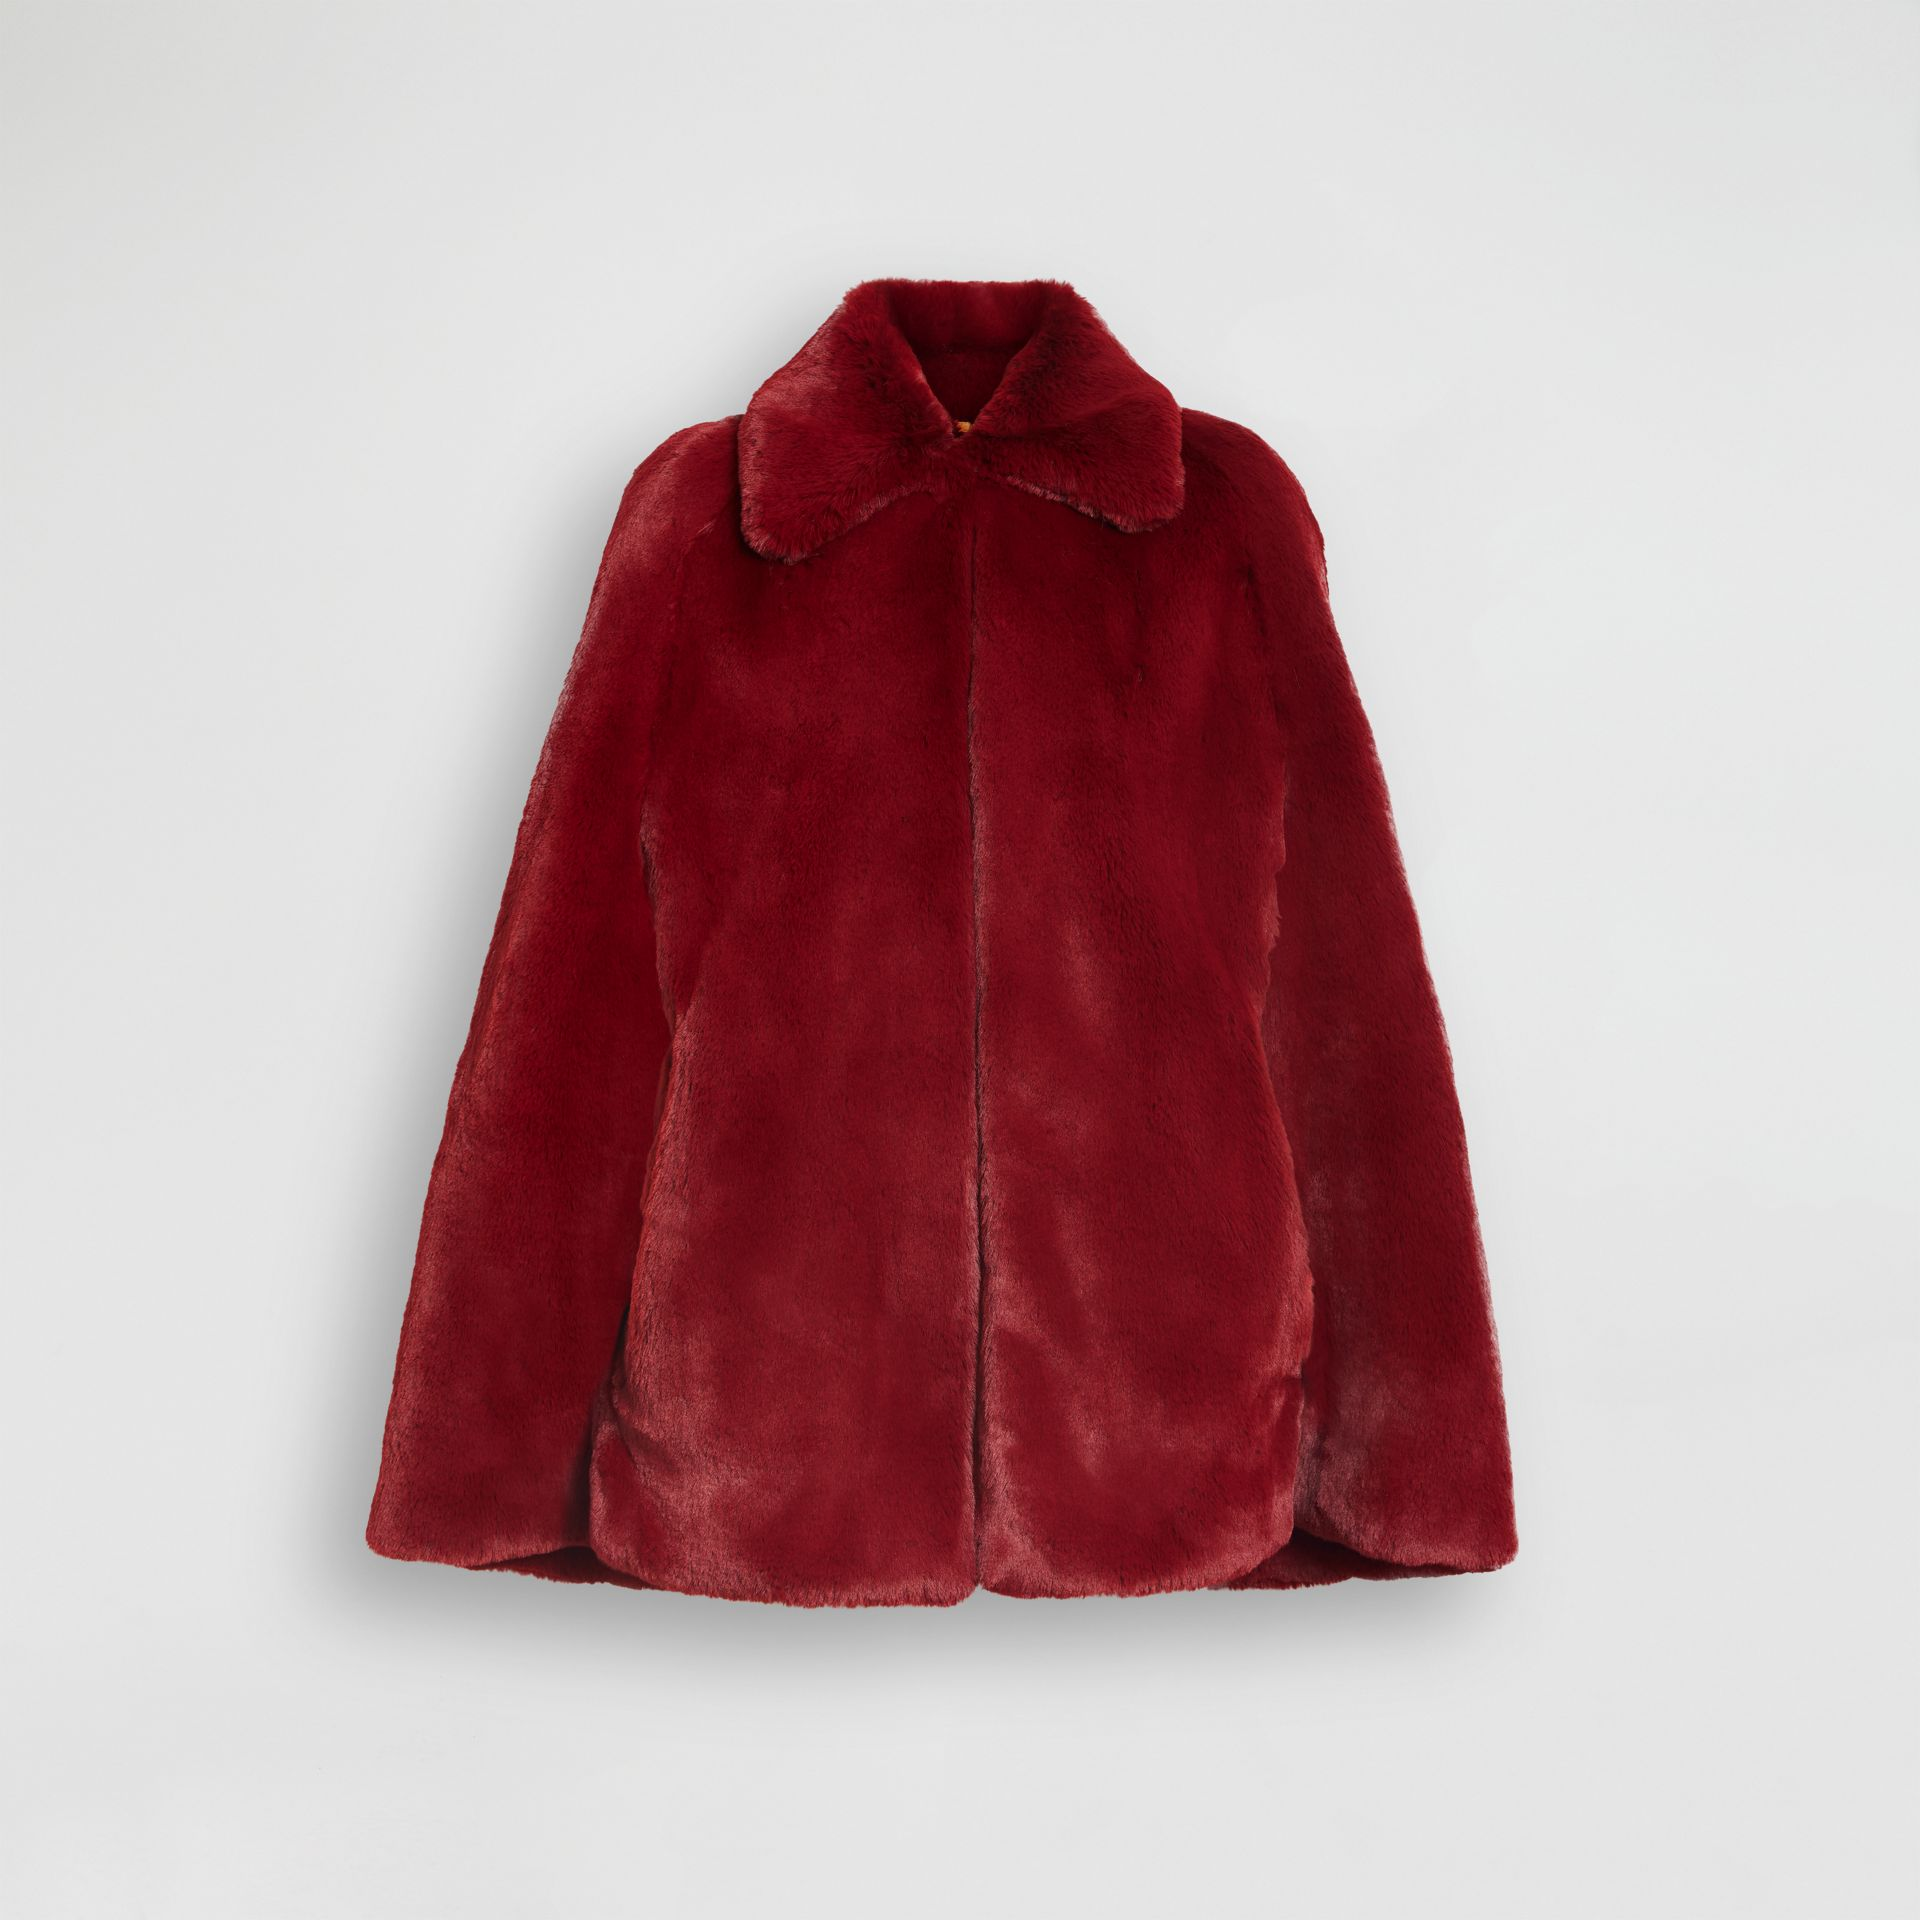 Faux Fur Cape in Burgundy - Women | Burberry Hong Kong - gallery image 3